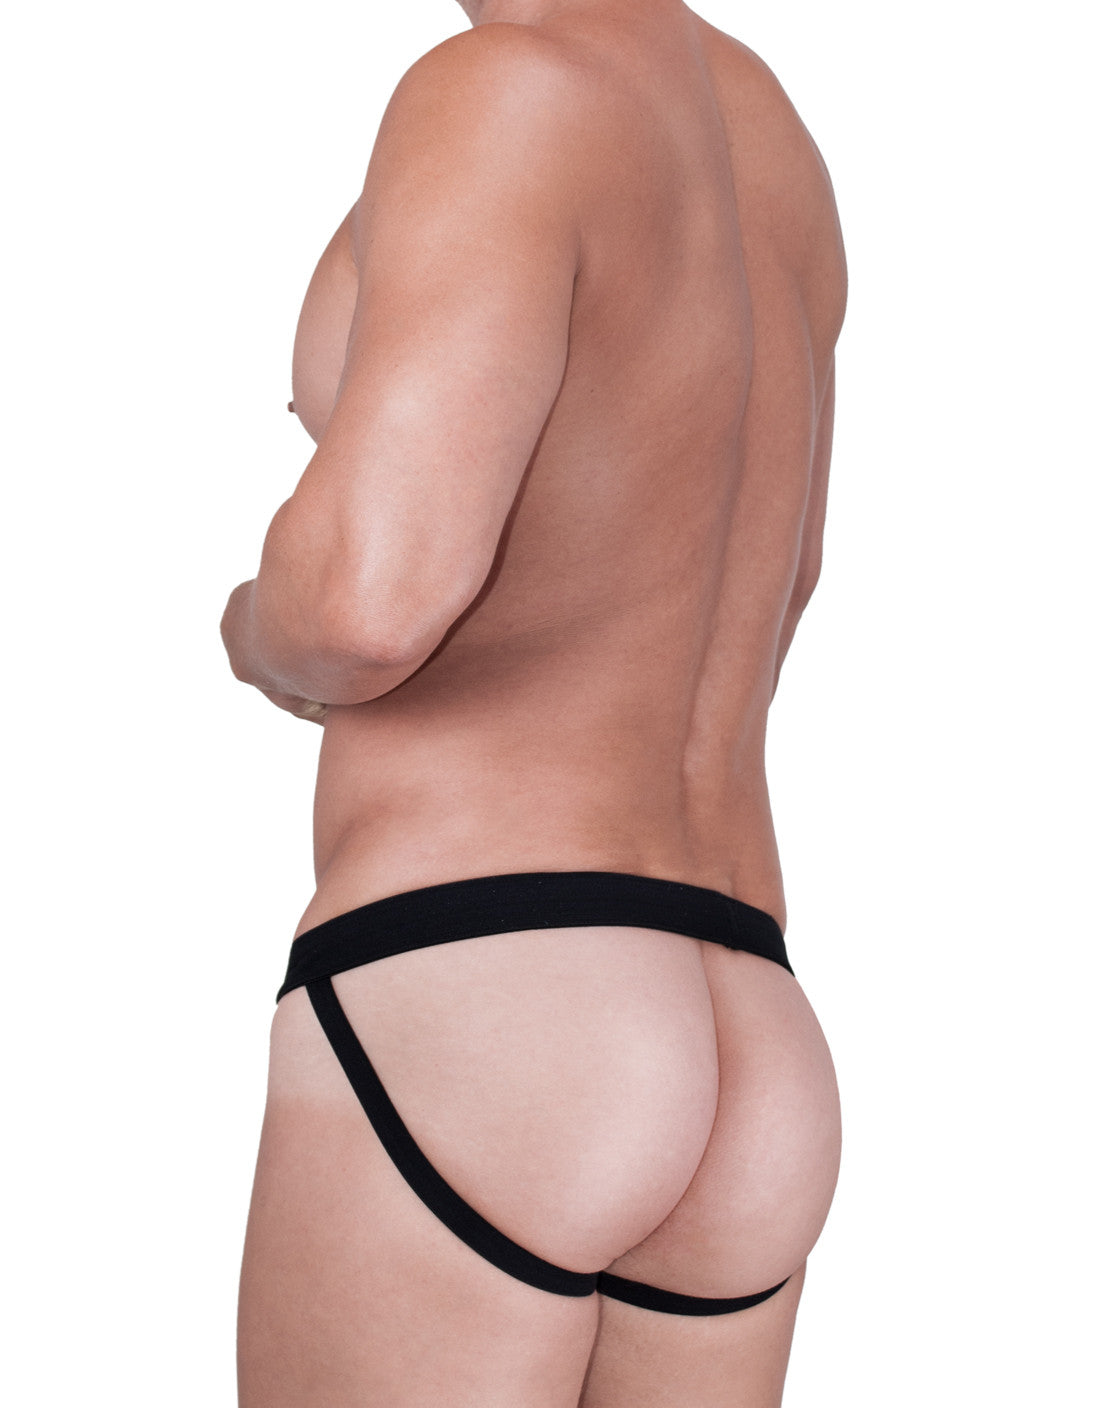 WildmanT Raw Mesh Jockstrap with Duraband Waistband Black - Big Penis Underwear, WildmanT - WildmanT